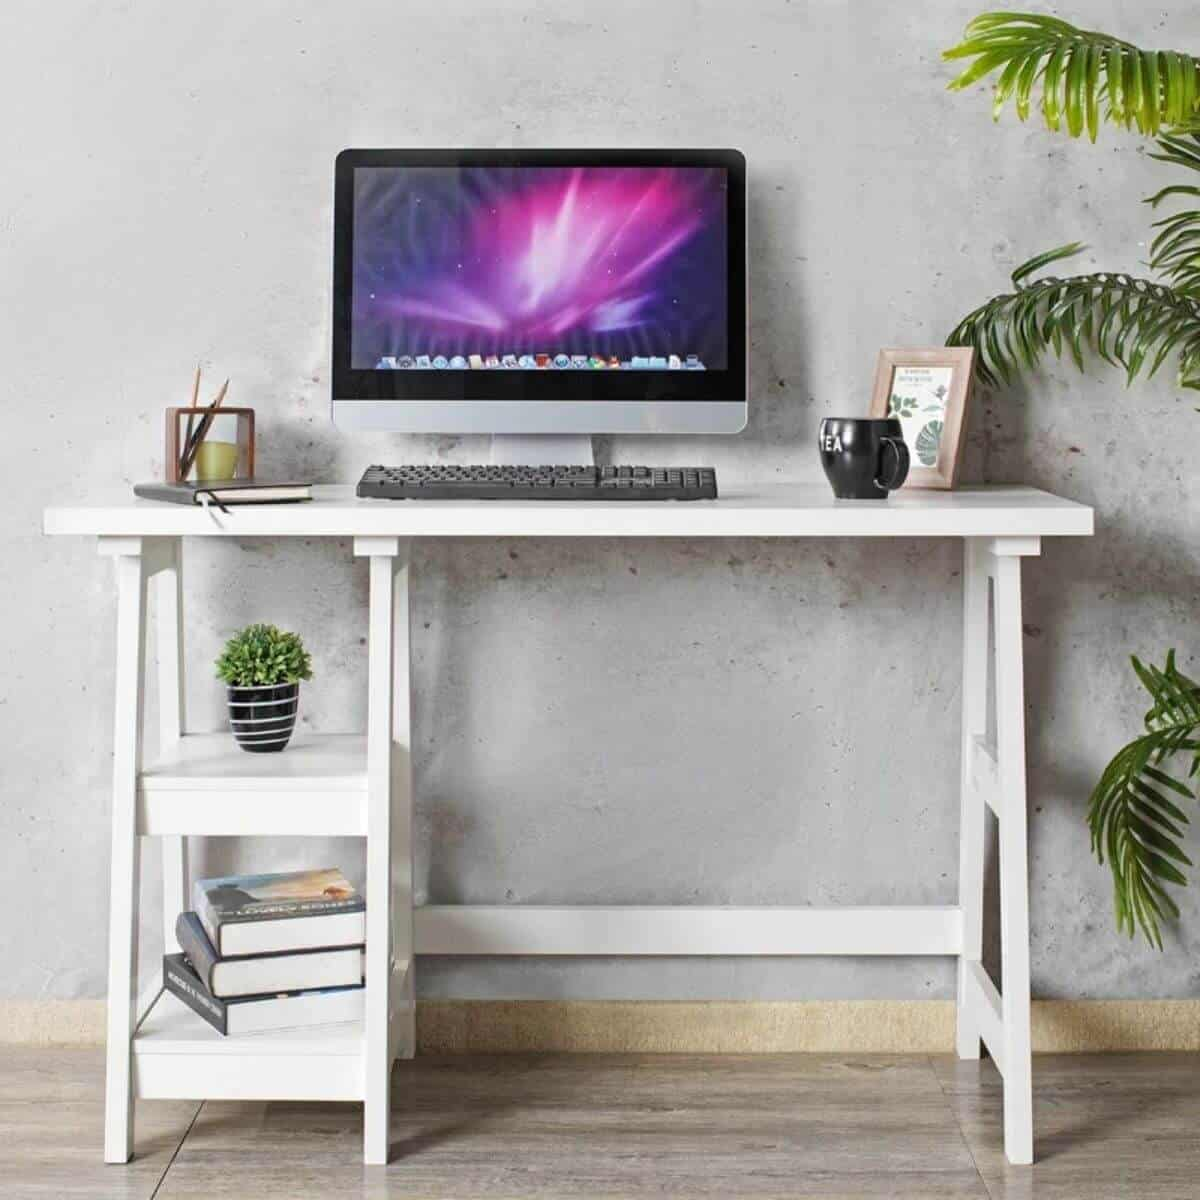 White desk against a cement wall with a computer and other office items on it.